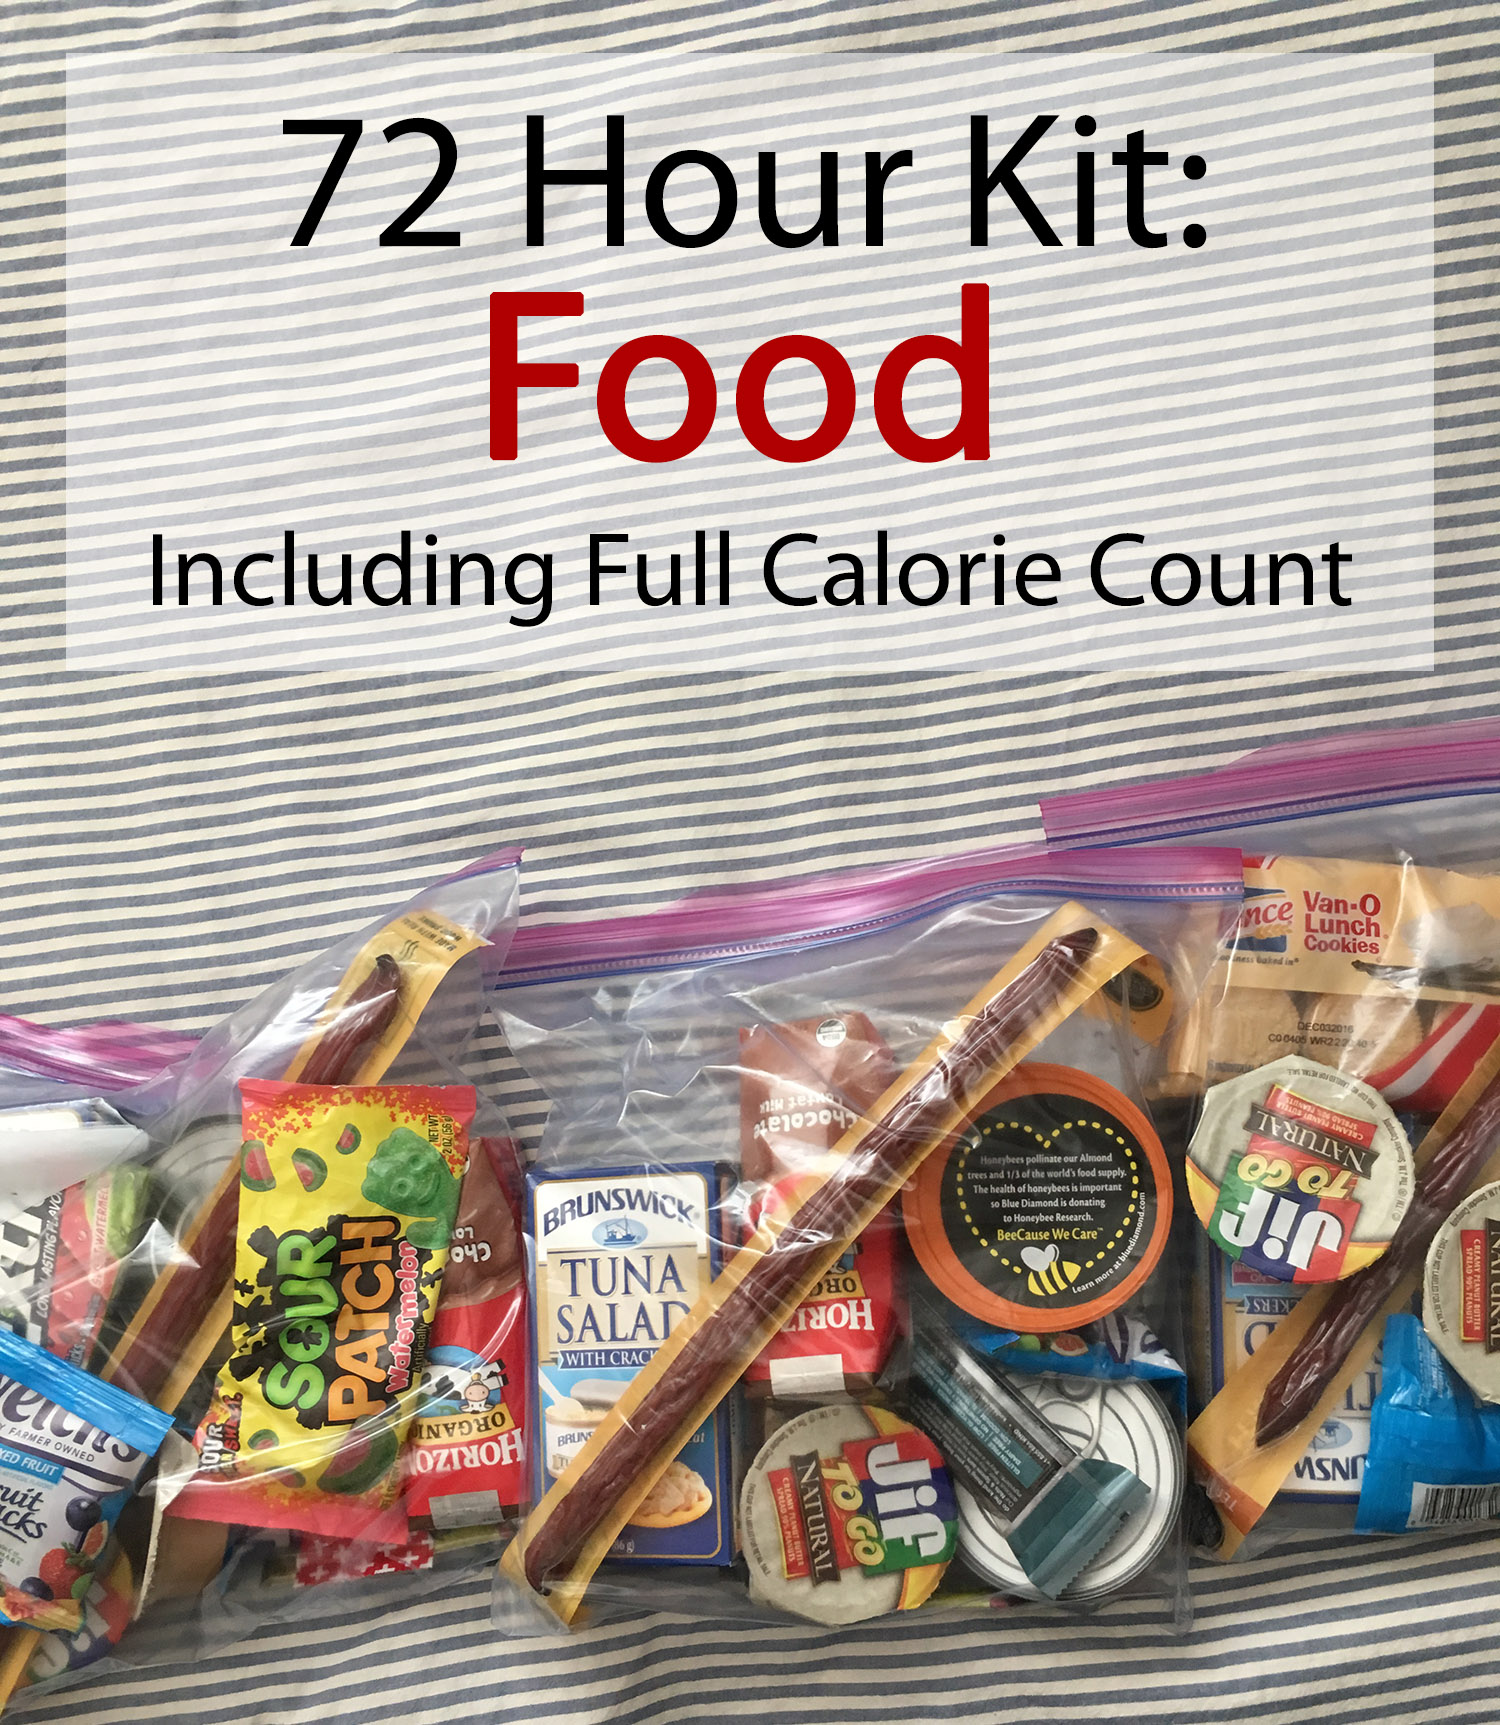 72 Hour Kit: Food (with calorie count). Don't get led astray — active adults need a lot of calories to stay on the ball in an emergency. How does your kit stack up?